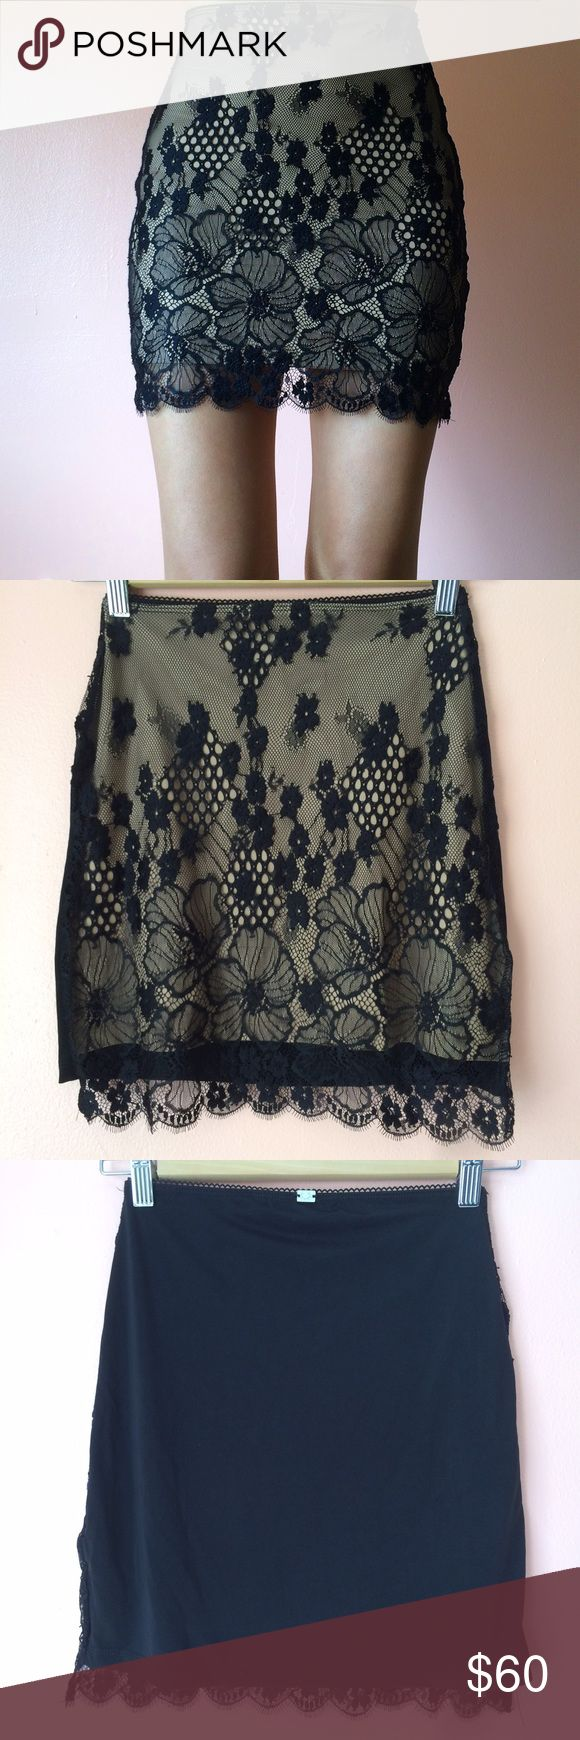 For Love & Lemons Skivvies Flower Lace Slip Skirt Slip into the DMs with this slip skirt by Skivvies by For Love & Lemons. Features a high waist, easy slip on silhouette, eyelash lace front panel, nude back and black back. MSRP $130. Fits a bit small. Marked size small. No returns allowed. Please ask all questions before buying. IG: [at] jacqueline.pak #forloveandlemons #skivvies For Love and Lemons Skirts Mini